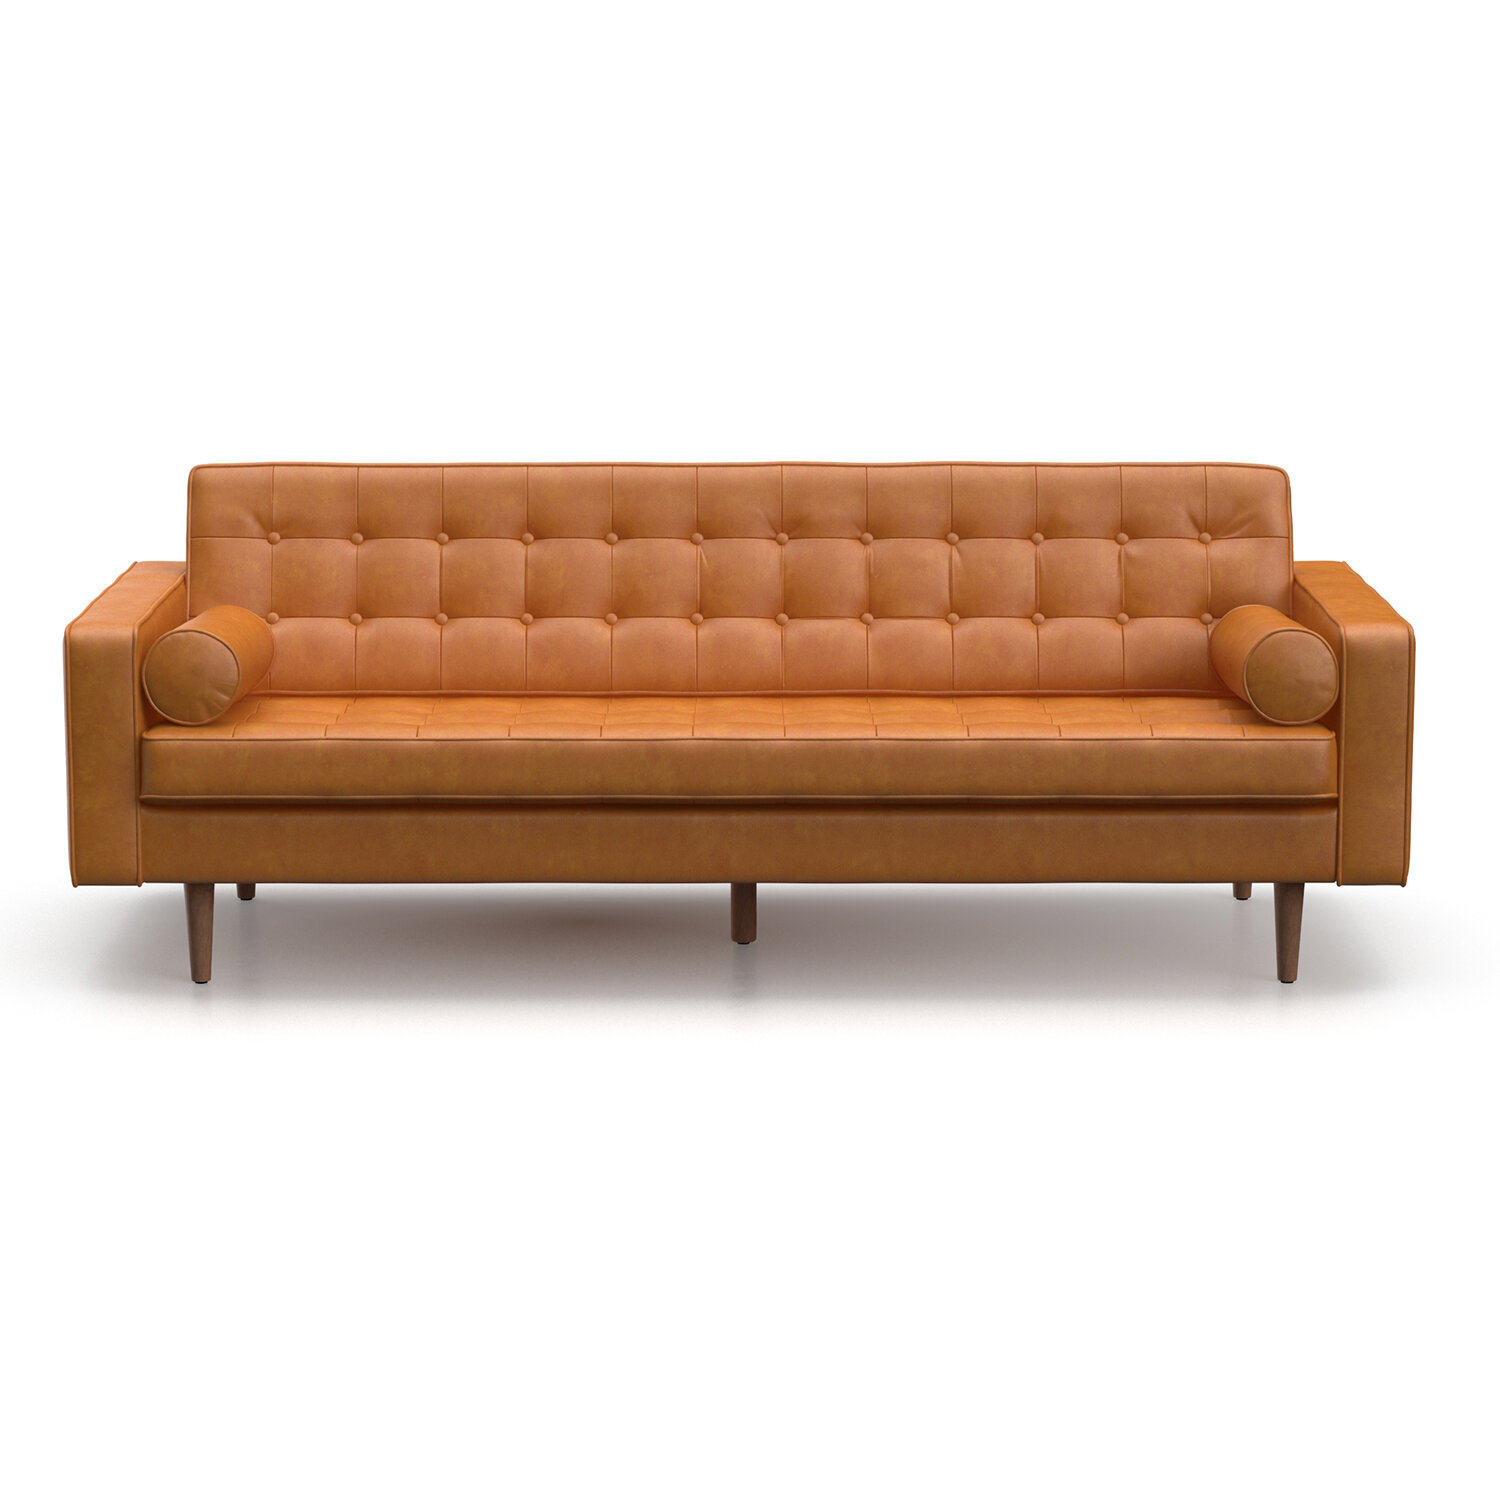 Berriman sofa reviews allmodern